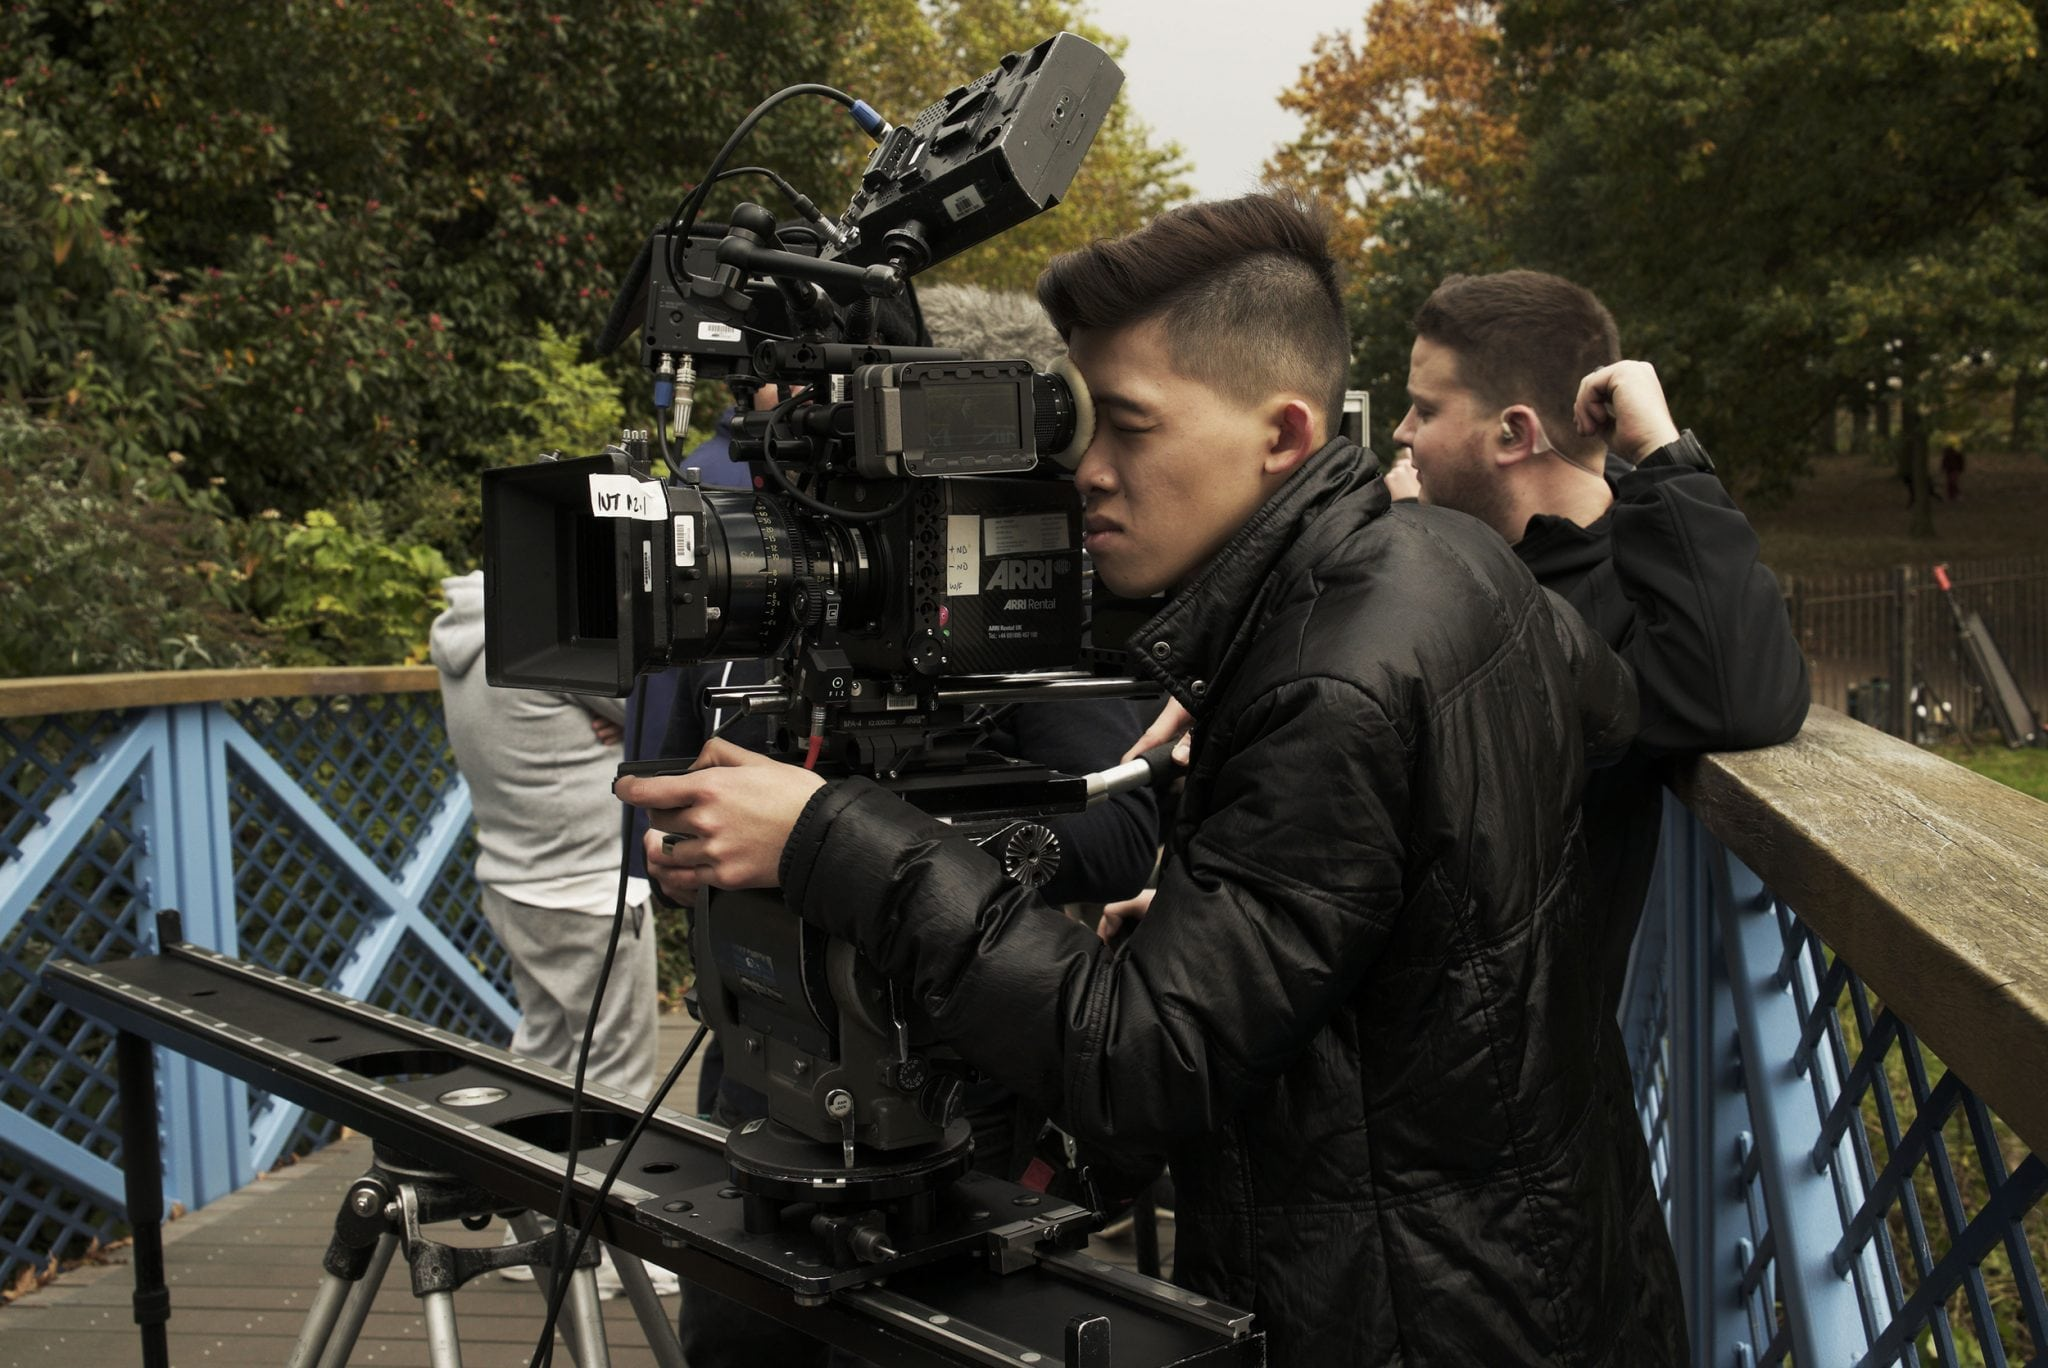 MA Film Production graduate and cinematographer nominated for Hollywood award